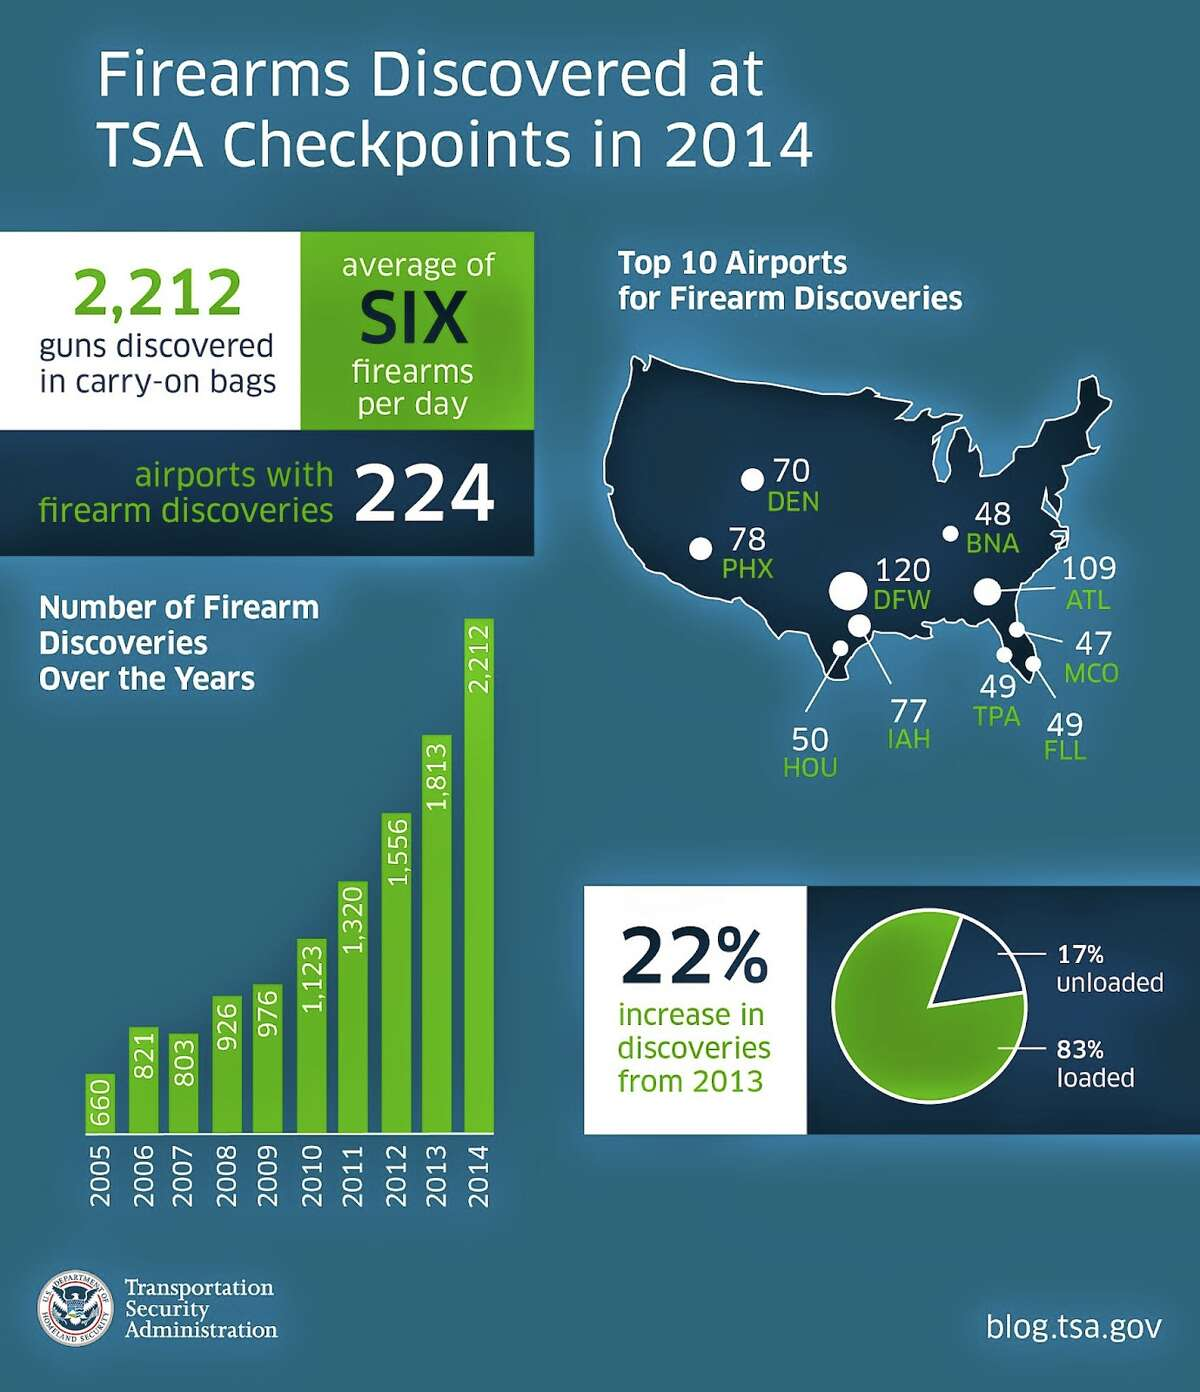 The Transportation Security Administration has finally released its official overview of events in 2014 and released city rankings and as predicted Texas ranked high for weapons seizures. According to the TSA's blog, 2014 was sadly another banner year, noting a 22 percent increase in discoveries over the previous year. 2,212 firearms were discovered in carry-on luggage in 2014 across 224 airports. According to the TSA, 83 percent of these guns were loaded.